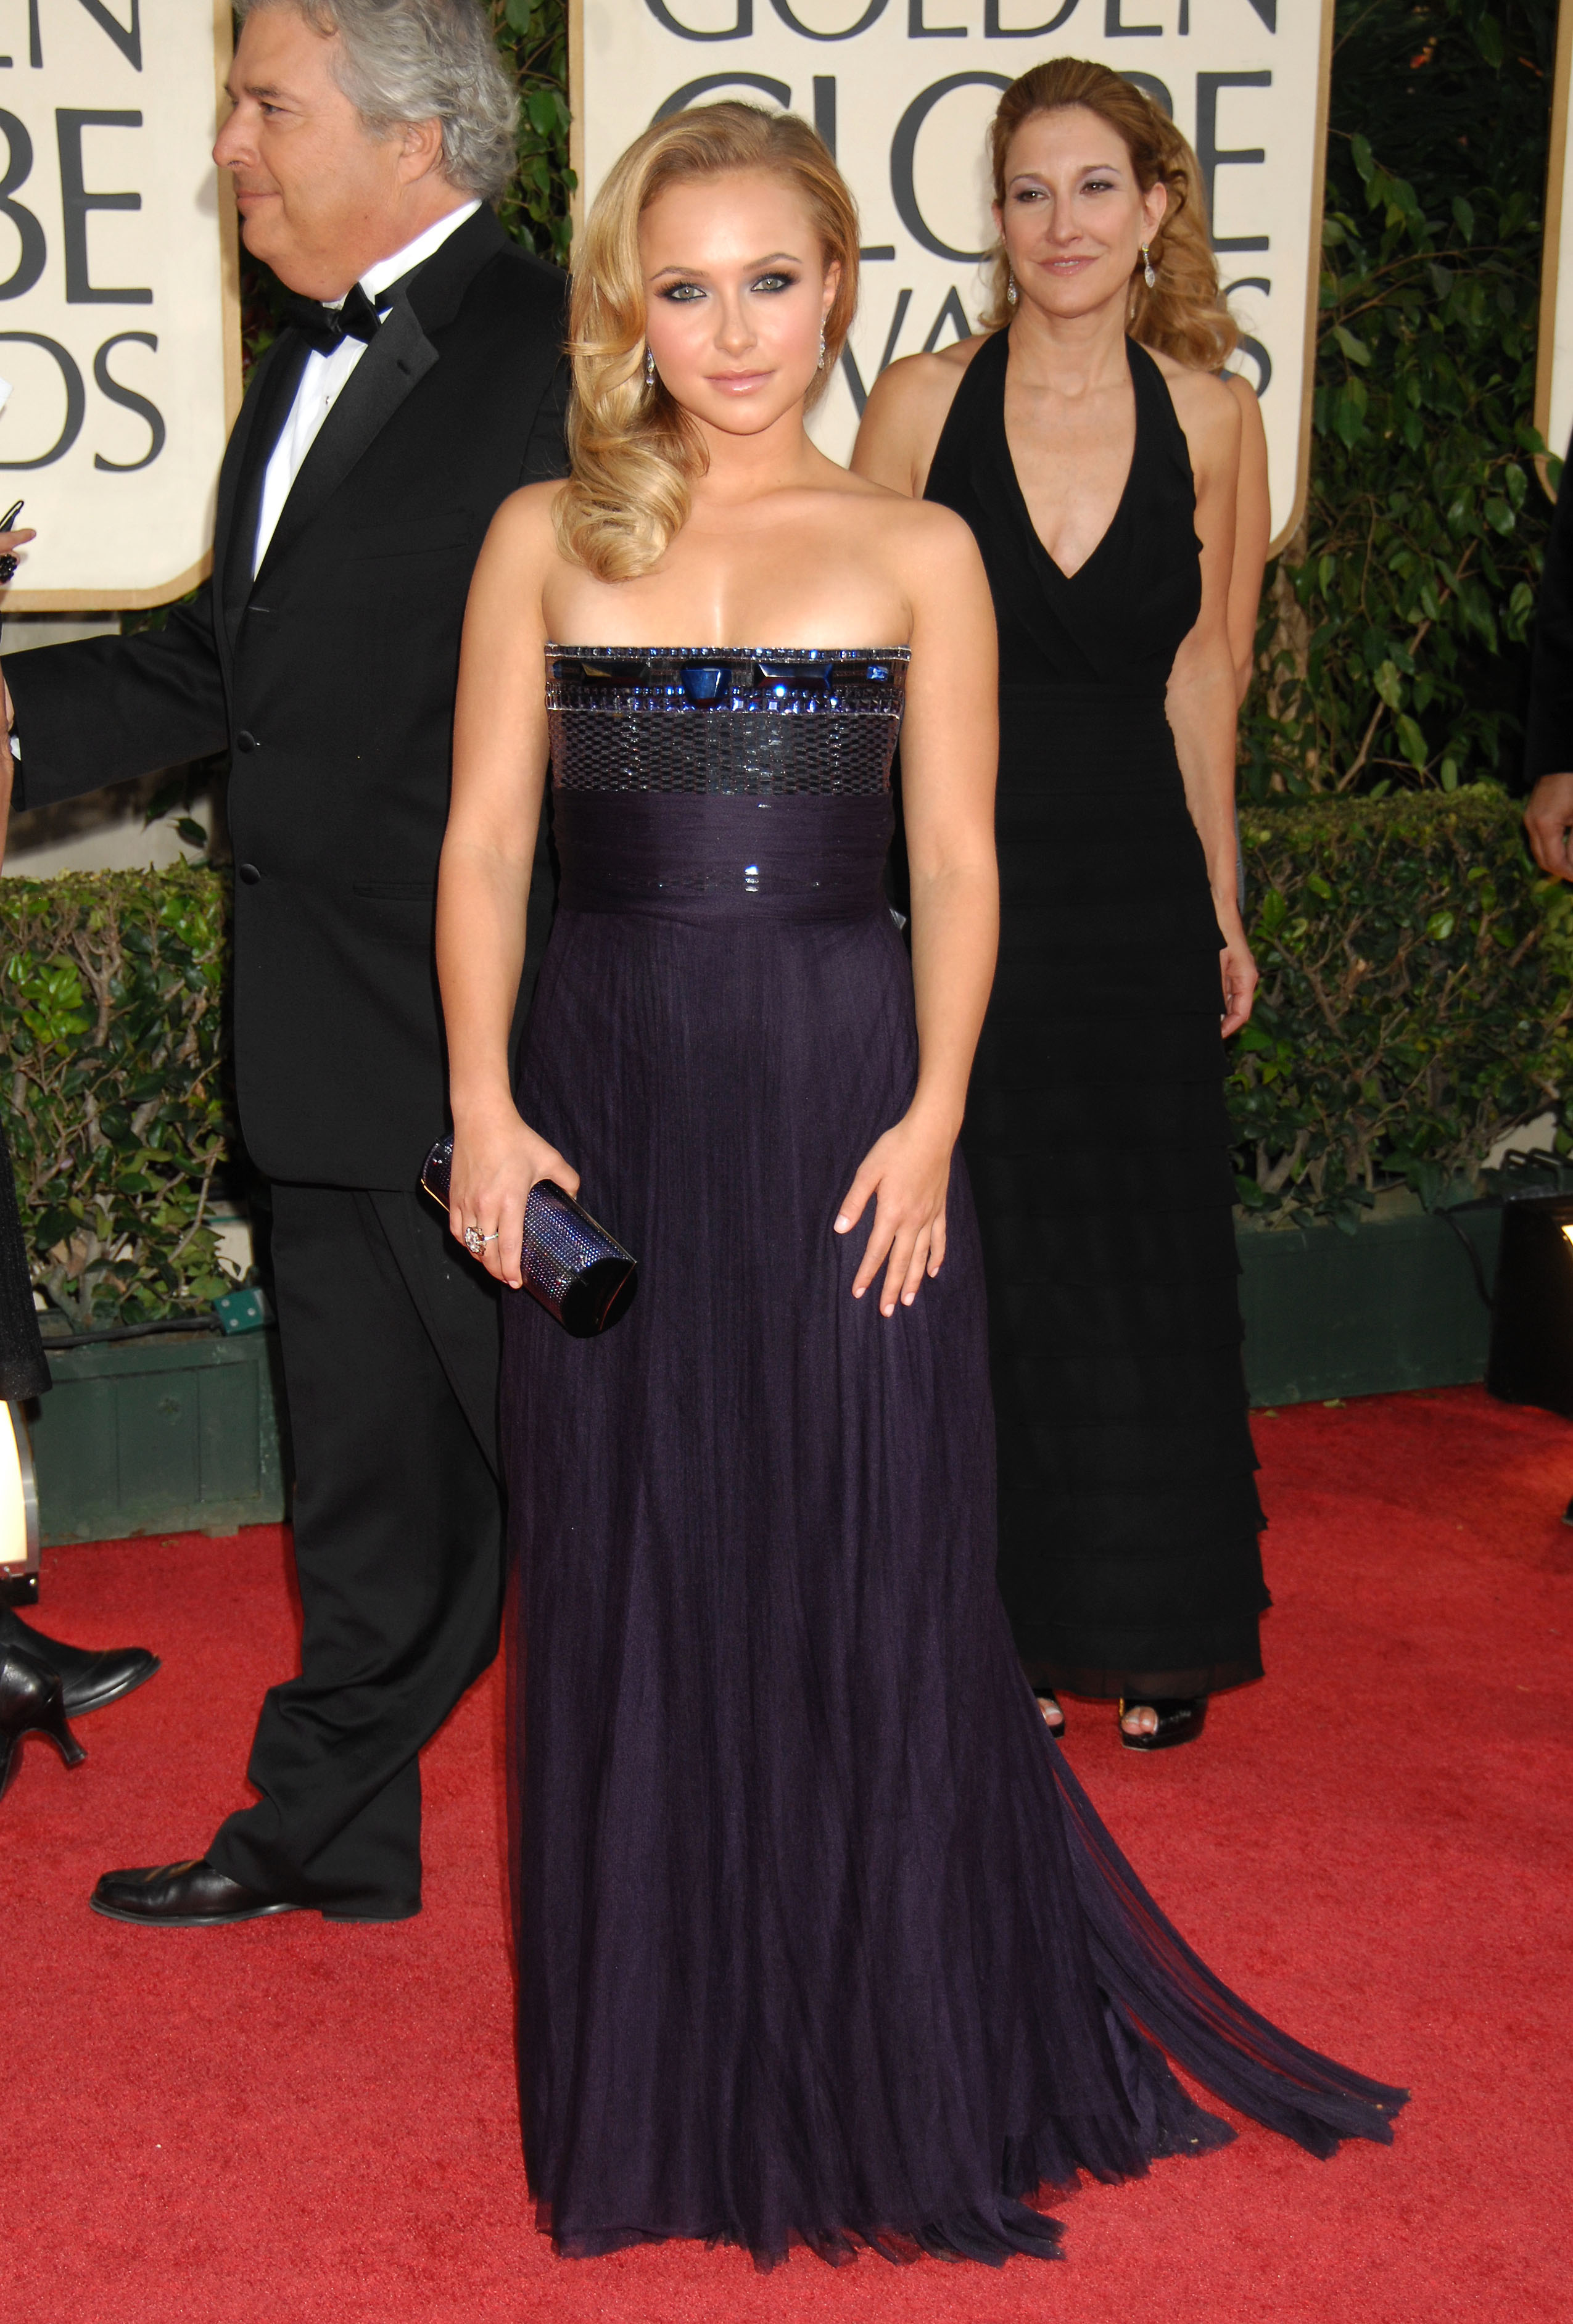 29571_Celebutopia-Hayden_Panettiere_arrives_at_the_66th_Annual_Golden_Globe_Awards-08_122_169lo.jpg